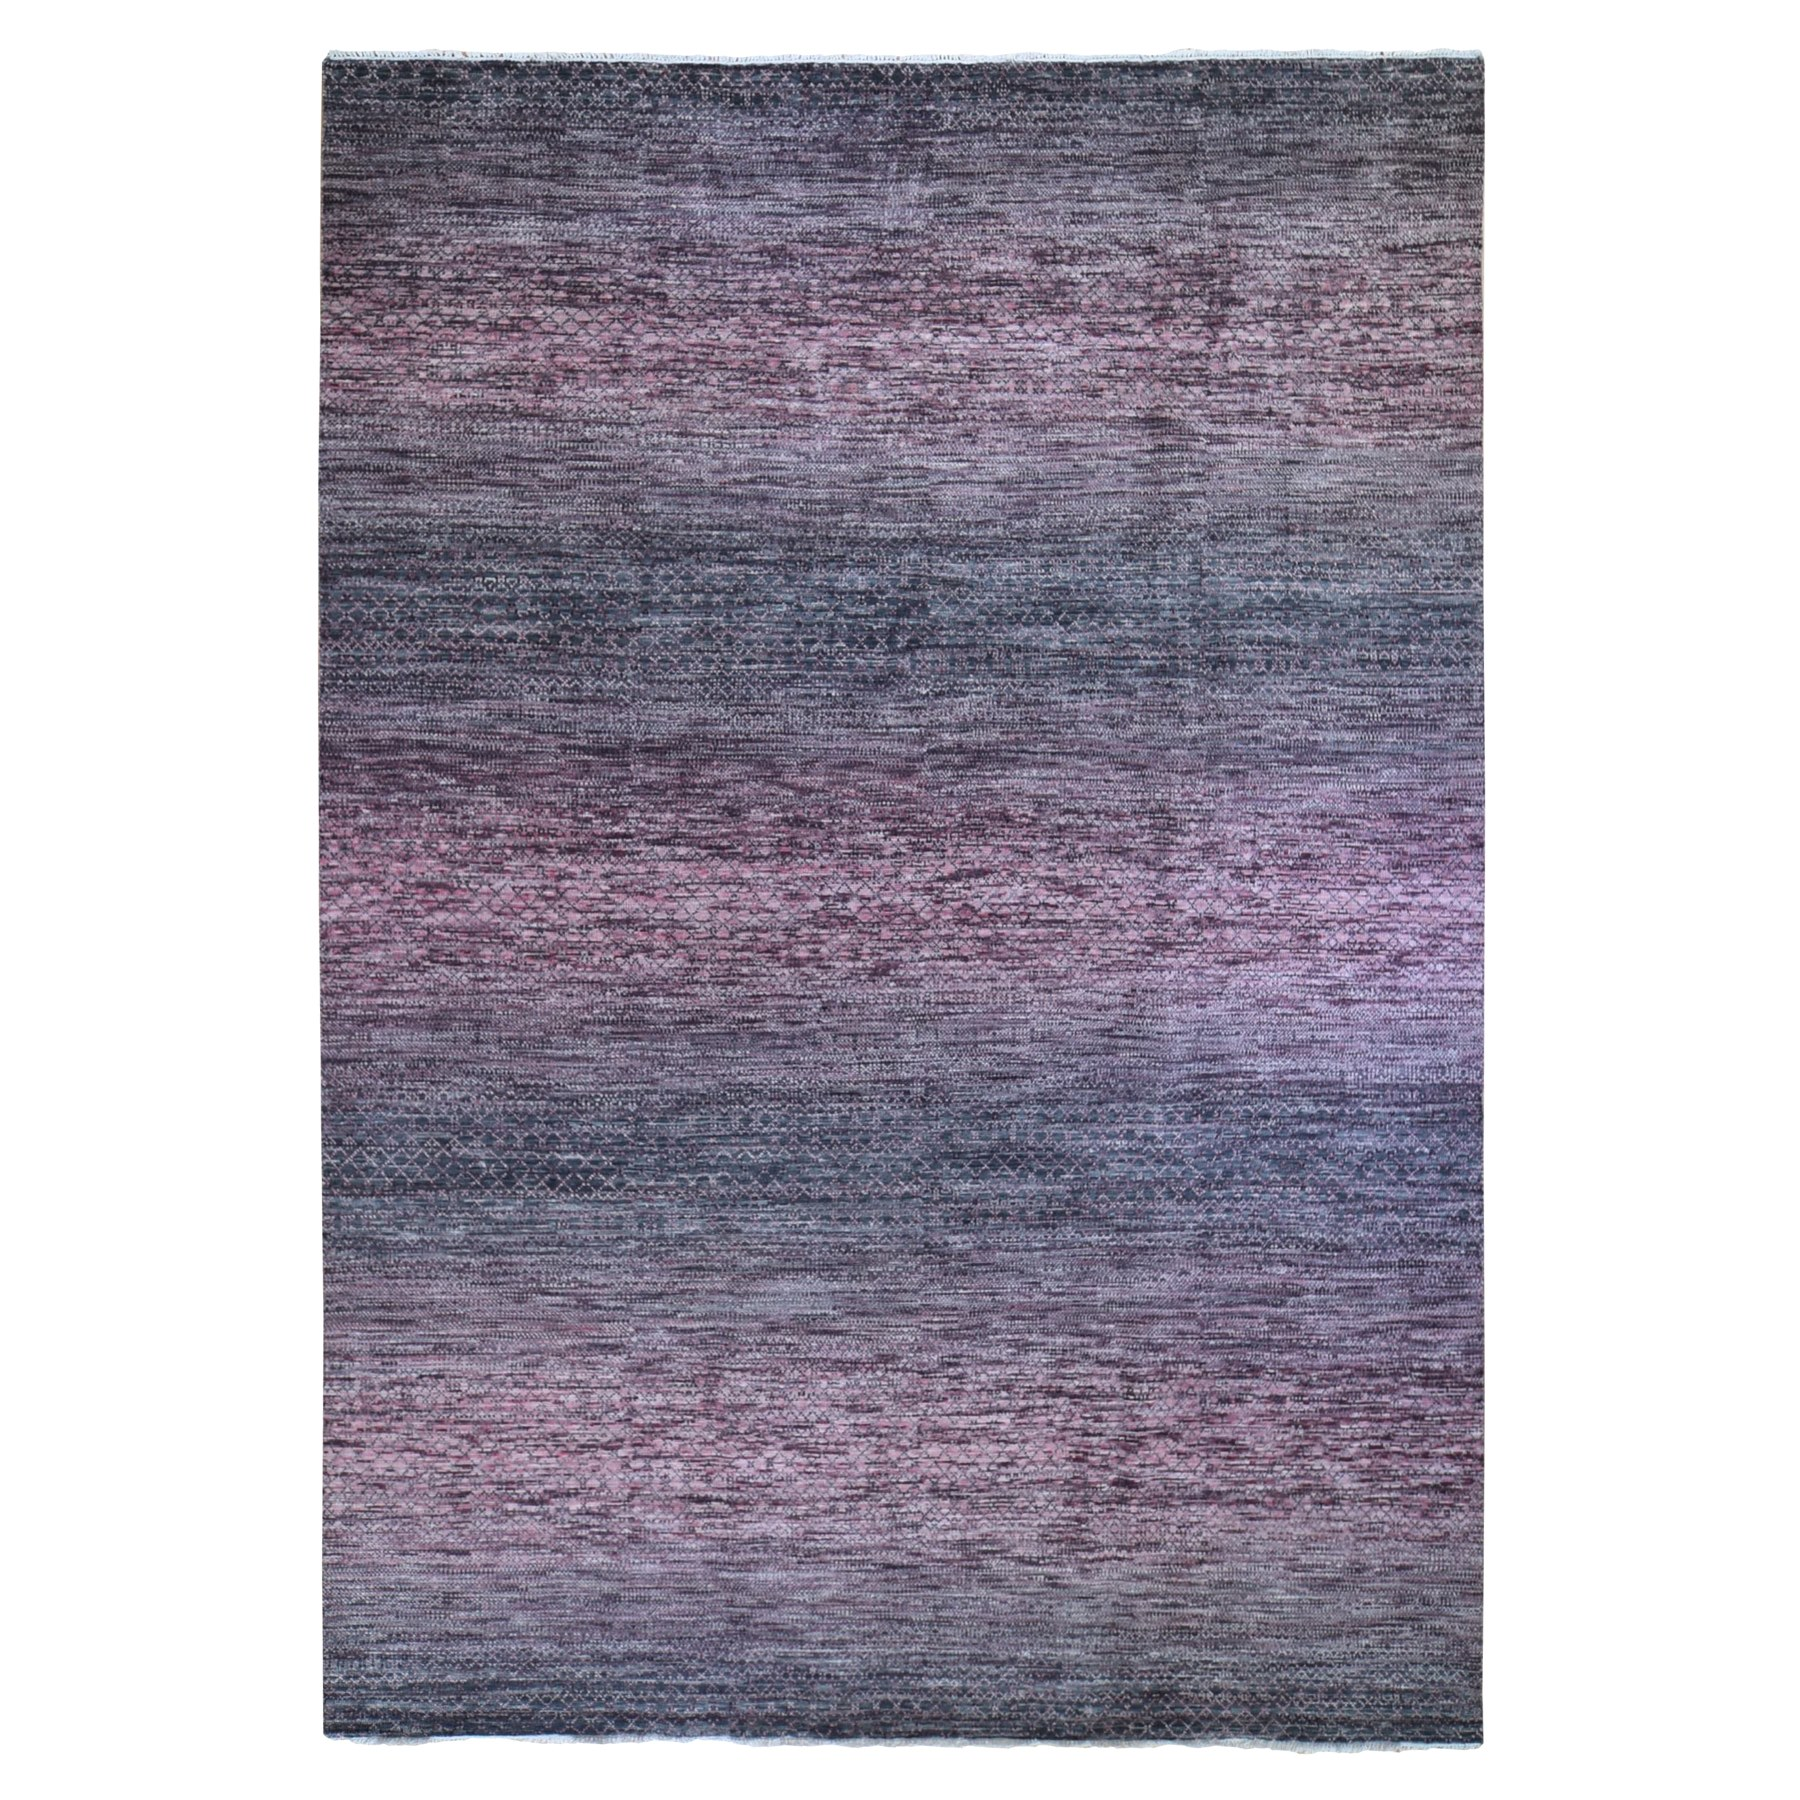 "10'x13'10"" Pink-Charcoal Black Chiaroscuro Collection Hand Knotted 100% Wool Thick and Plush Modern Rug"